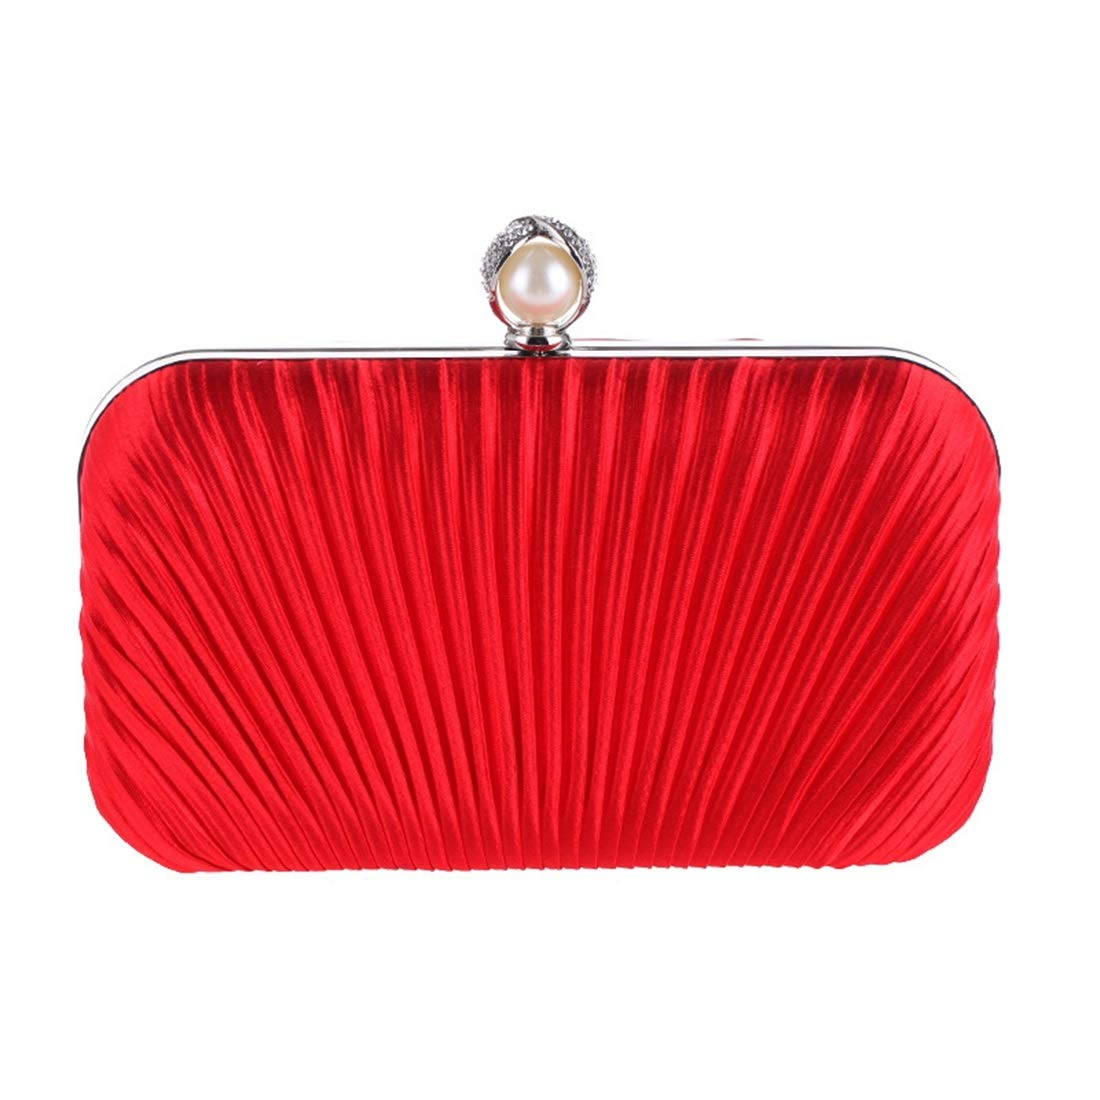 Color : Red QARYYQ New Womens Bag Fashion Evening Bag Diamond-Encrusted Evening Banquet Bag Europe and America Ruili Fold Fabric Craft Bag Evening Package